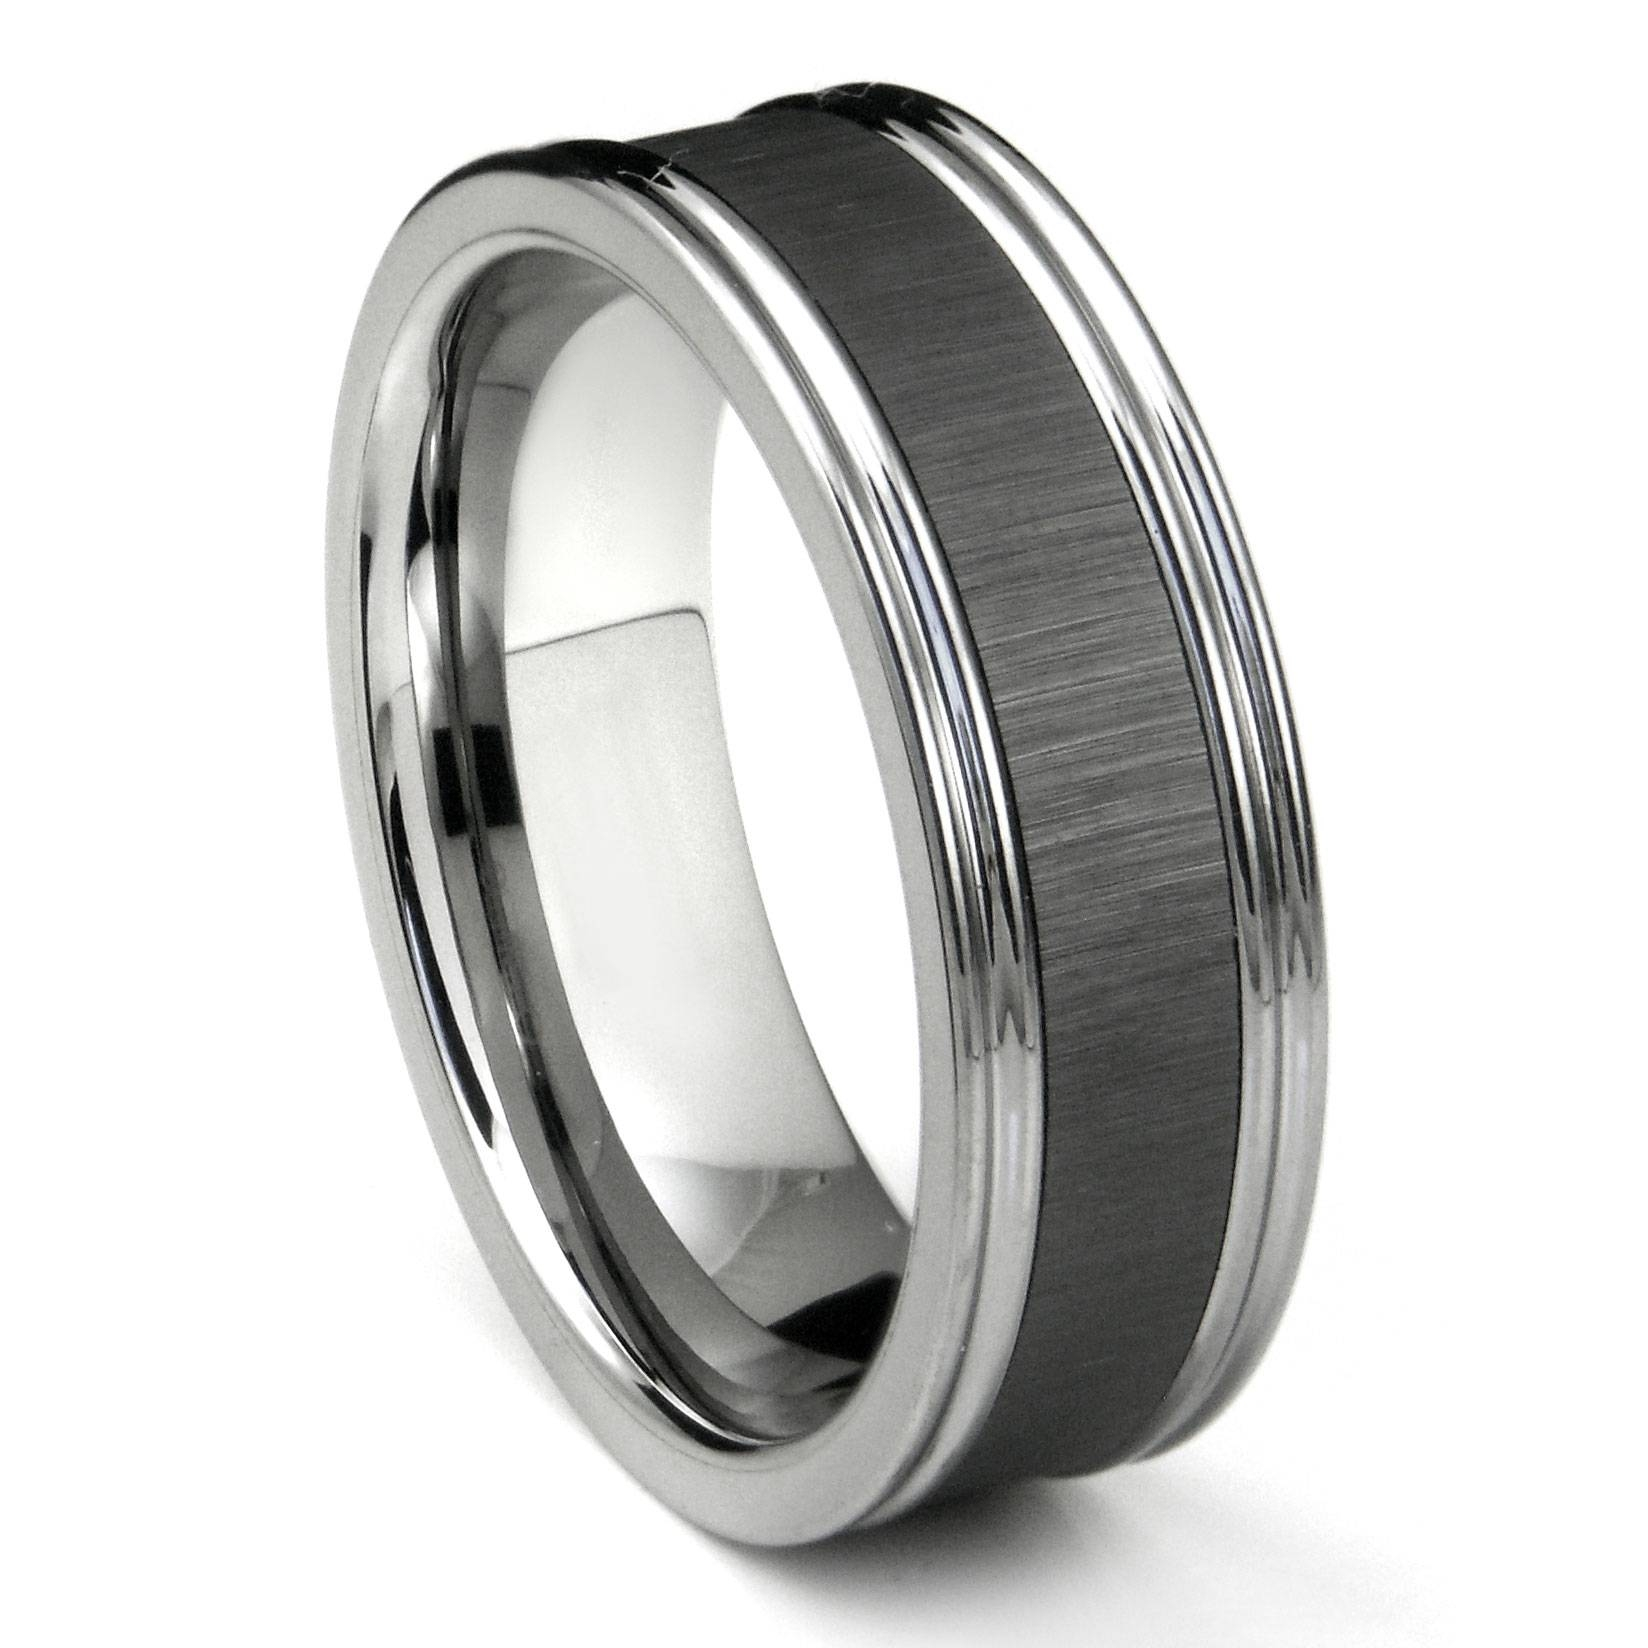 Tungsten Carbide Black Ceramic Inlay Wedding Band Ring W Intended For Tungsten Titanium Wedding Bands (View 11 of 15)